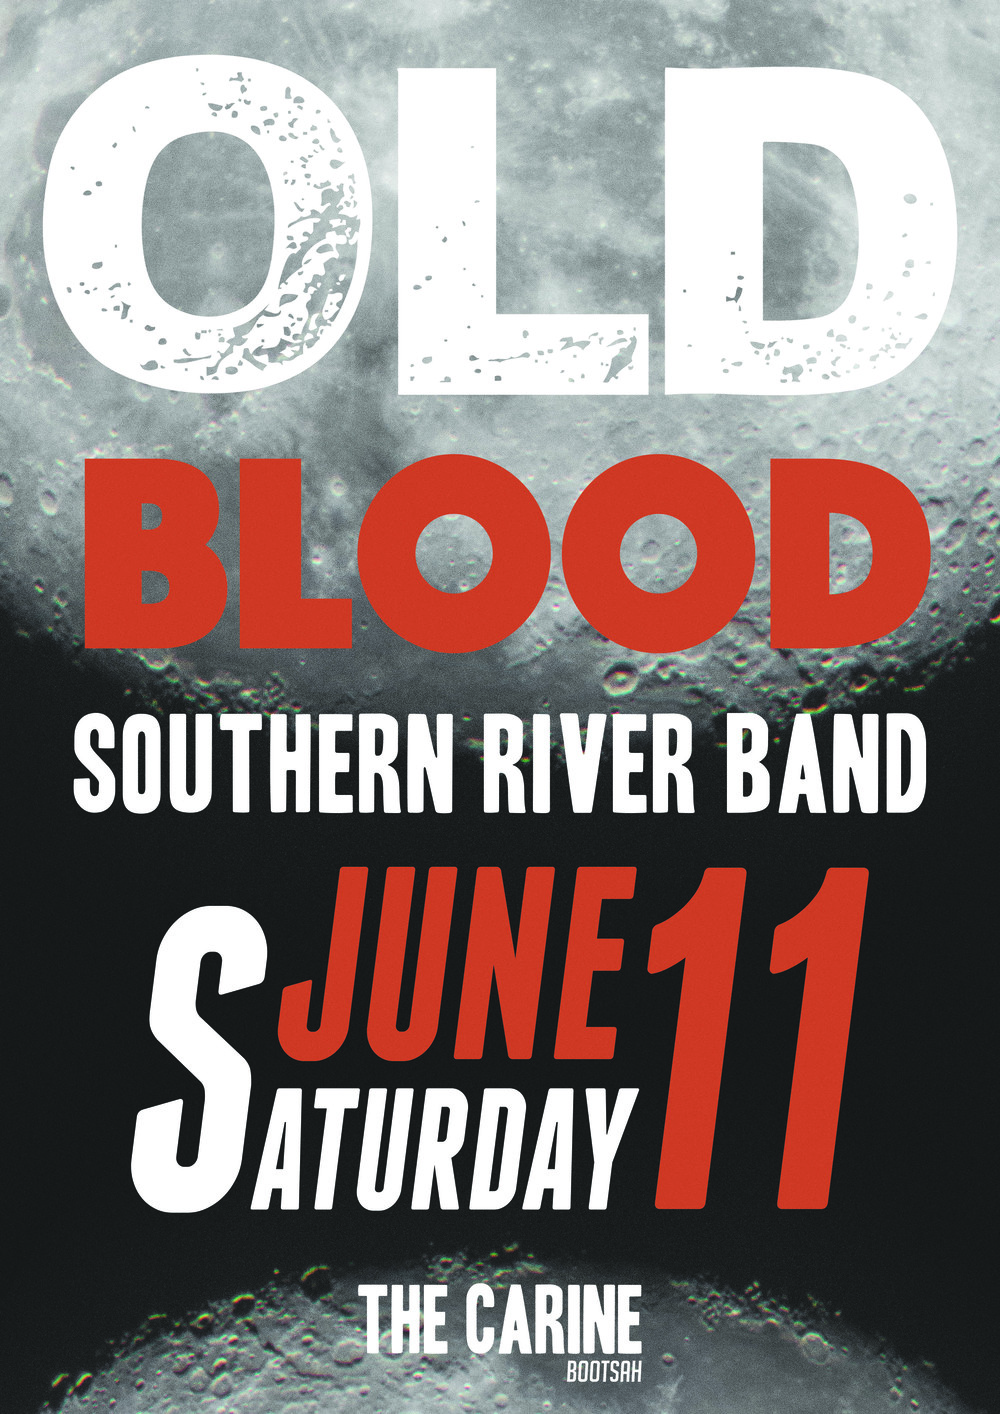 OLD BLOOD + SOUTHERN RIVER BAND @ THE CARINE